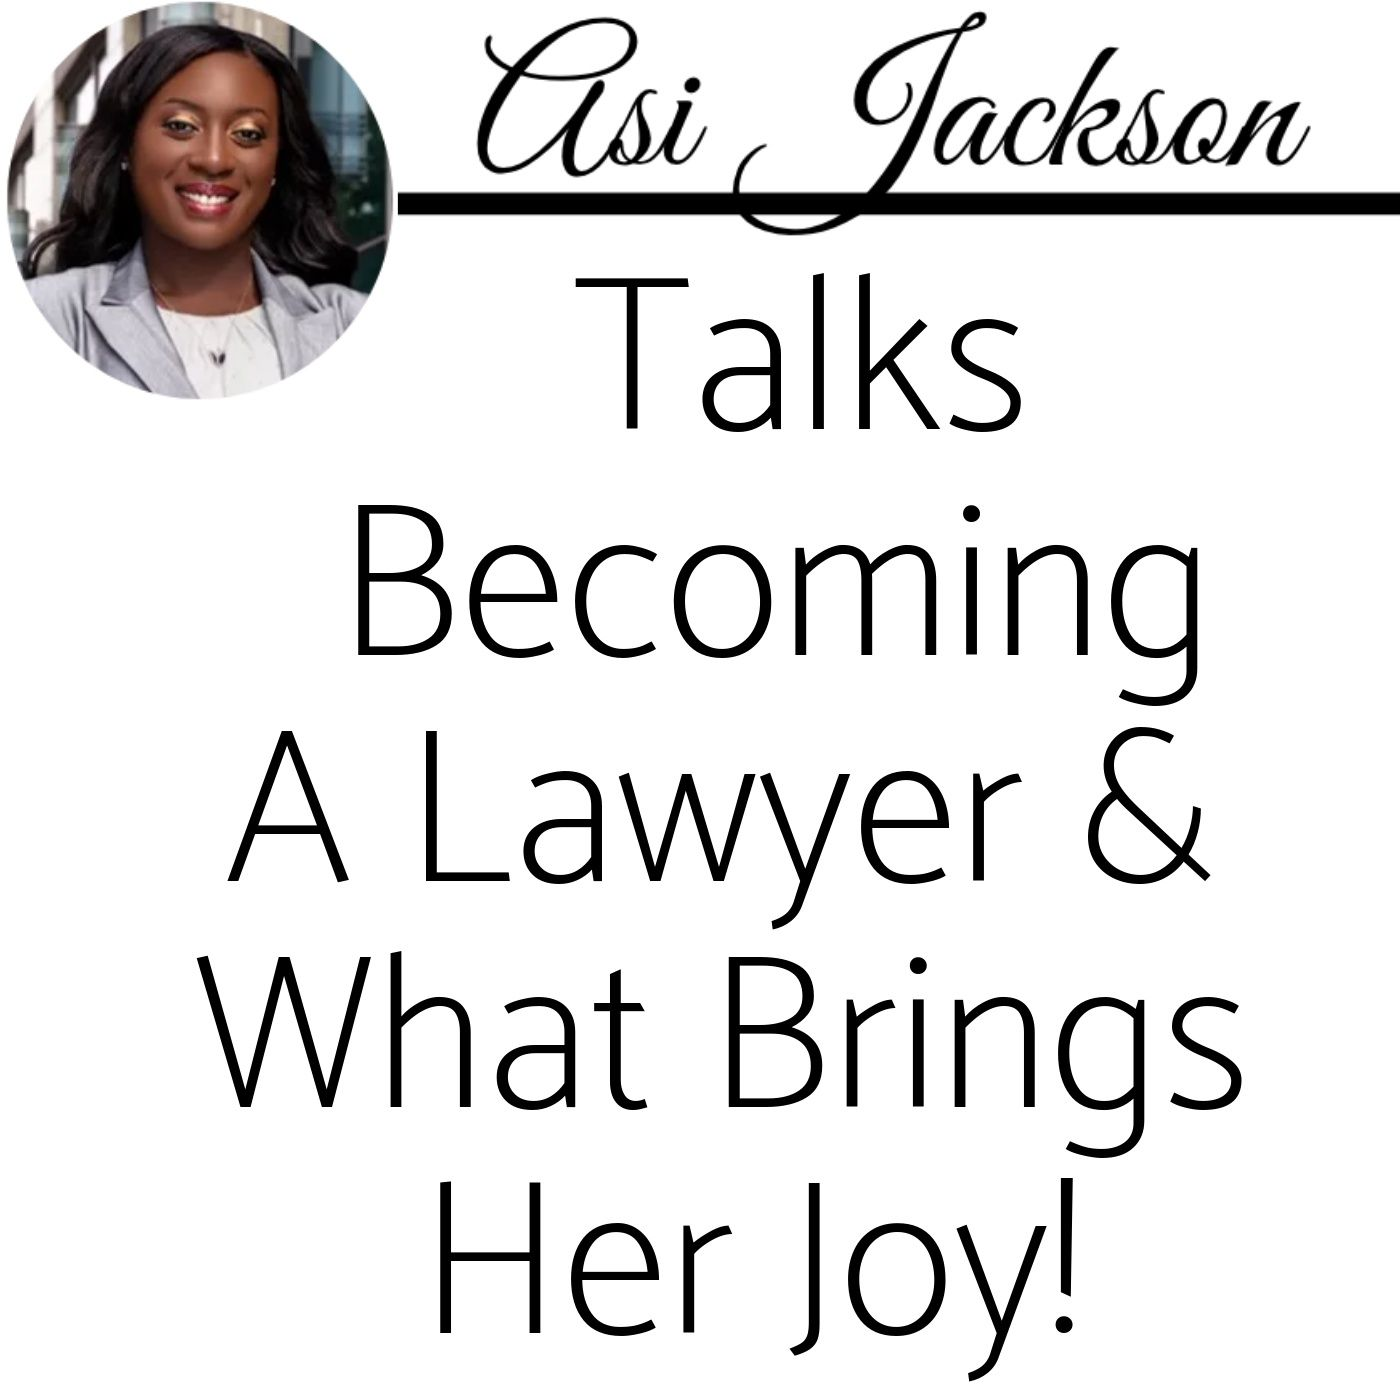 Episode 54: Part 1 of 3 - Asi Jackson Talks Becoming a Lawyer & What Brings Her Joy!